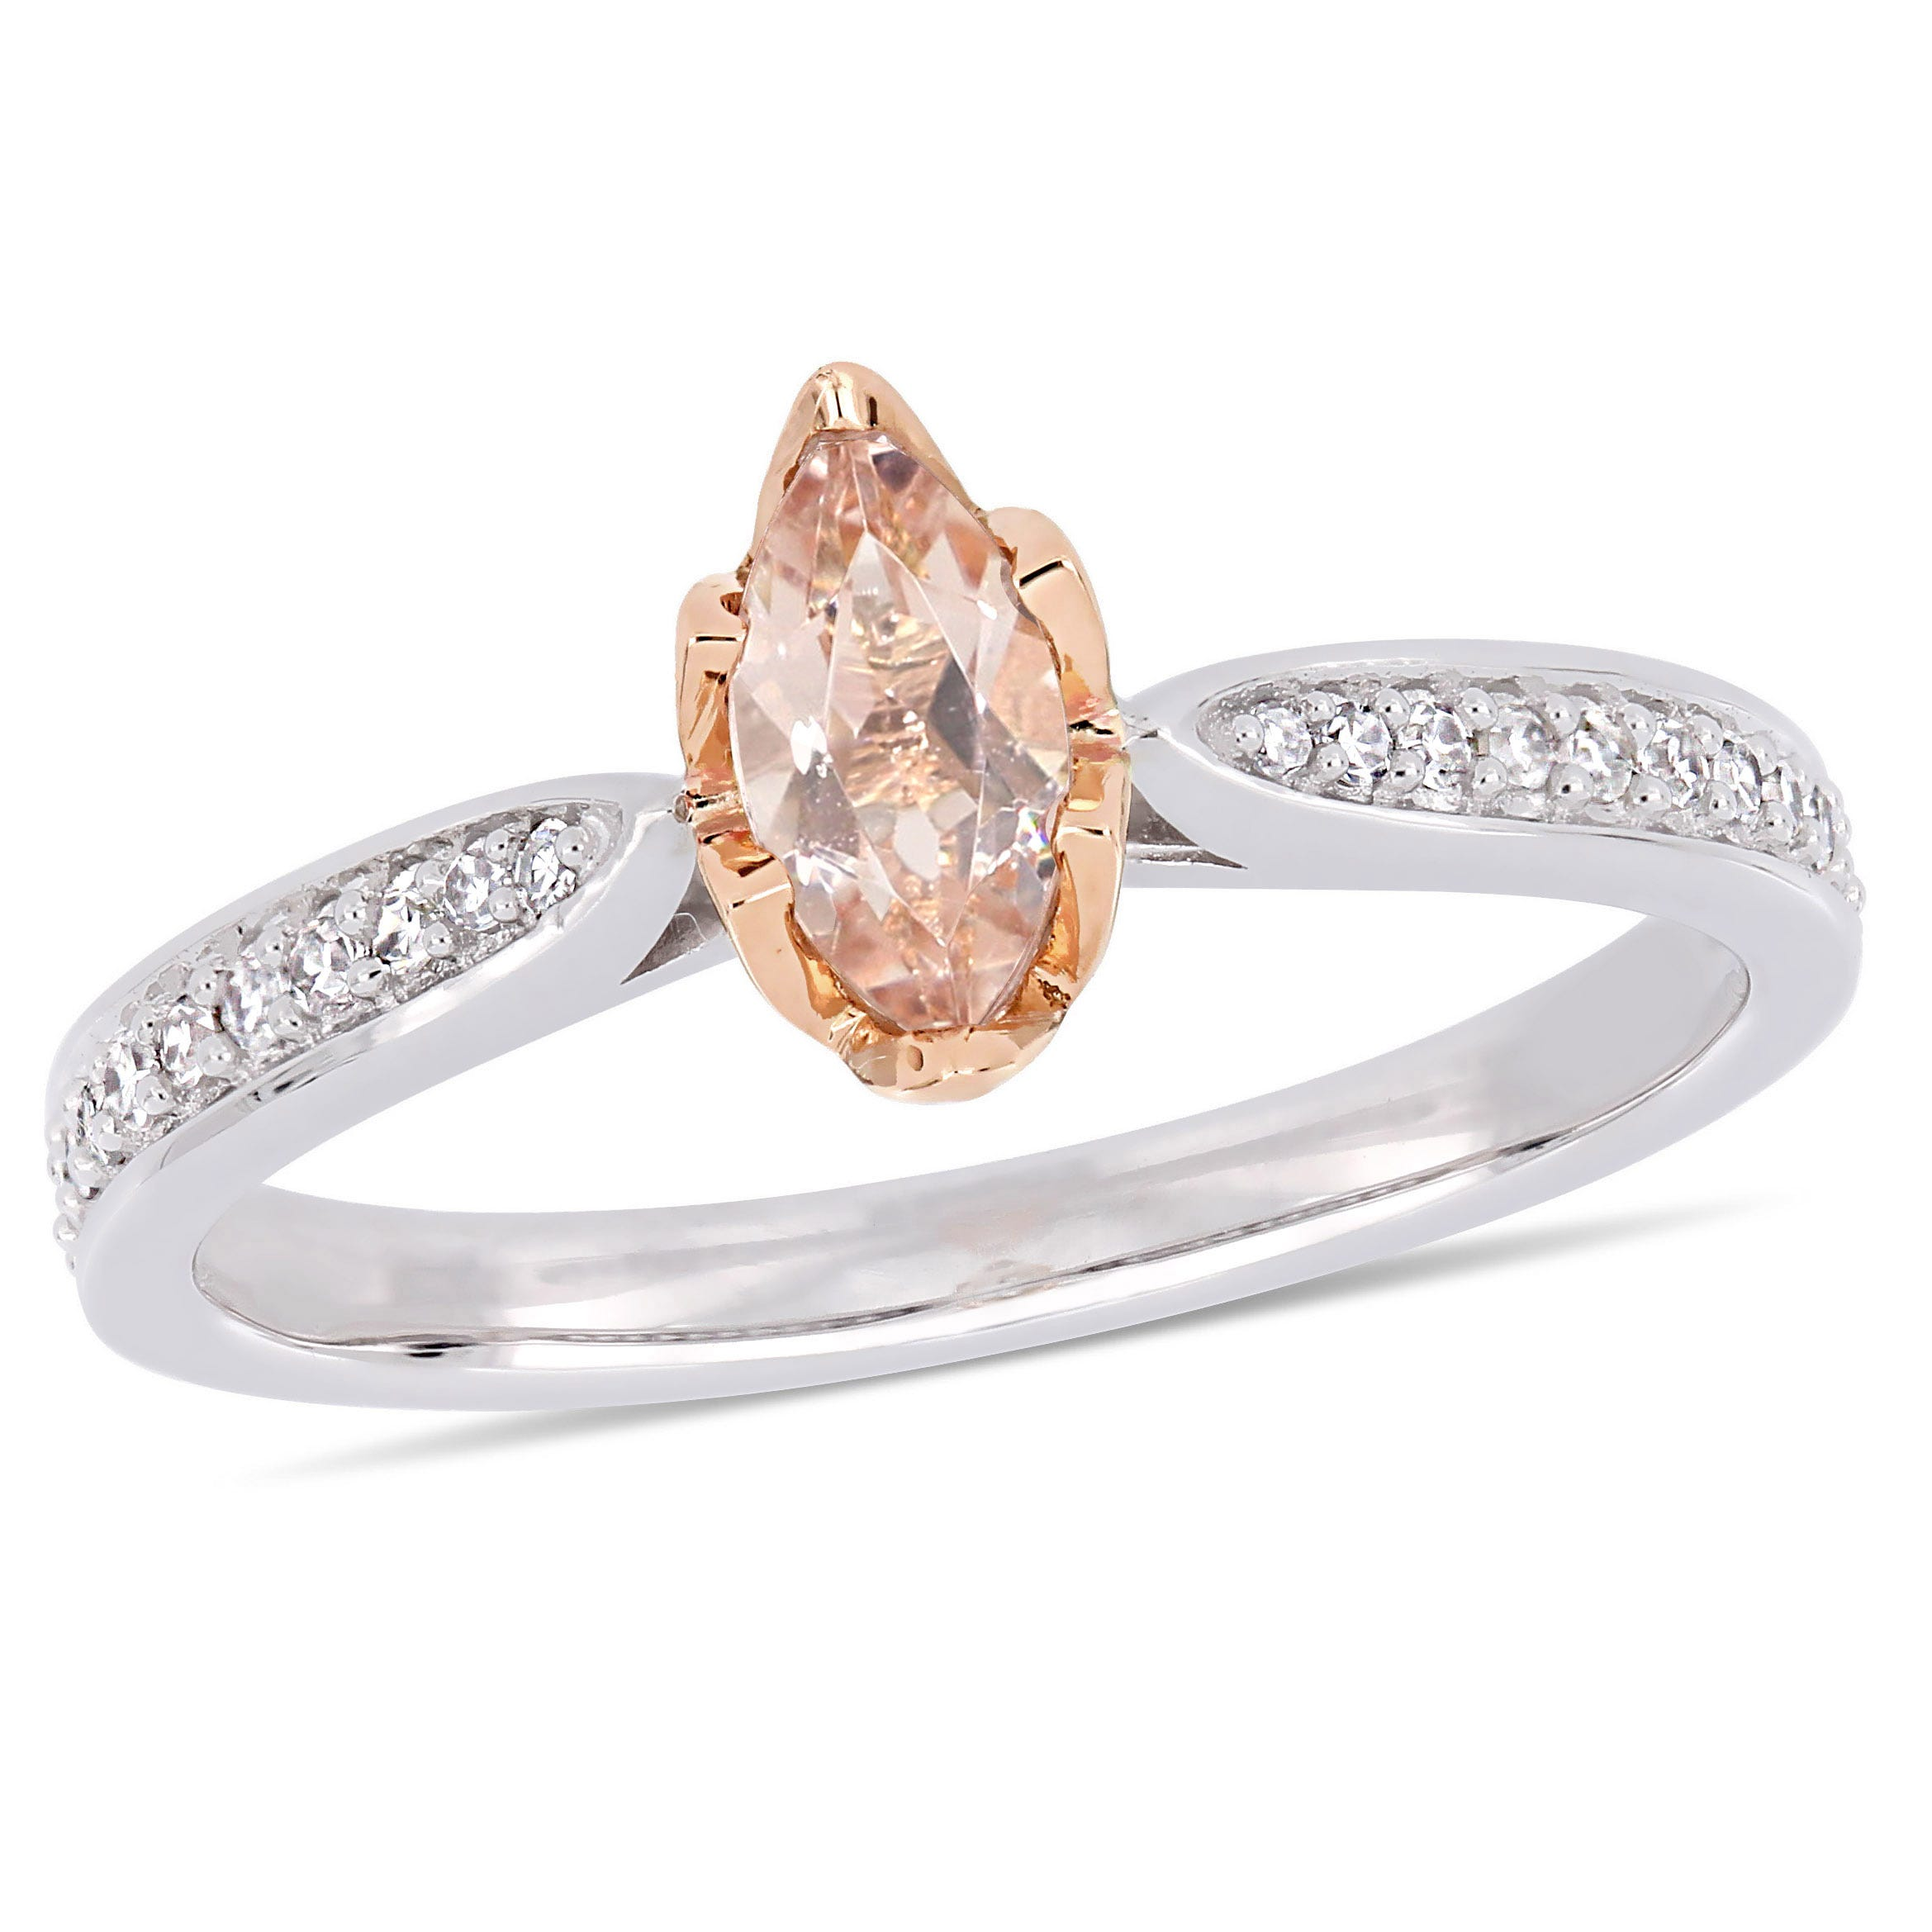 Marquise Cut Morganite and Diamond Ring in 14k Rose Gold